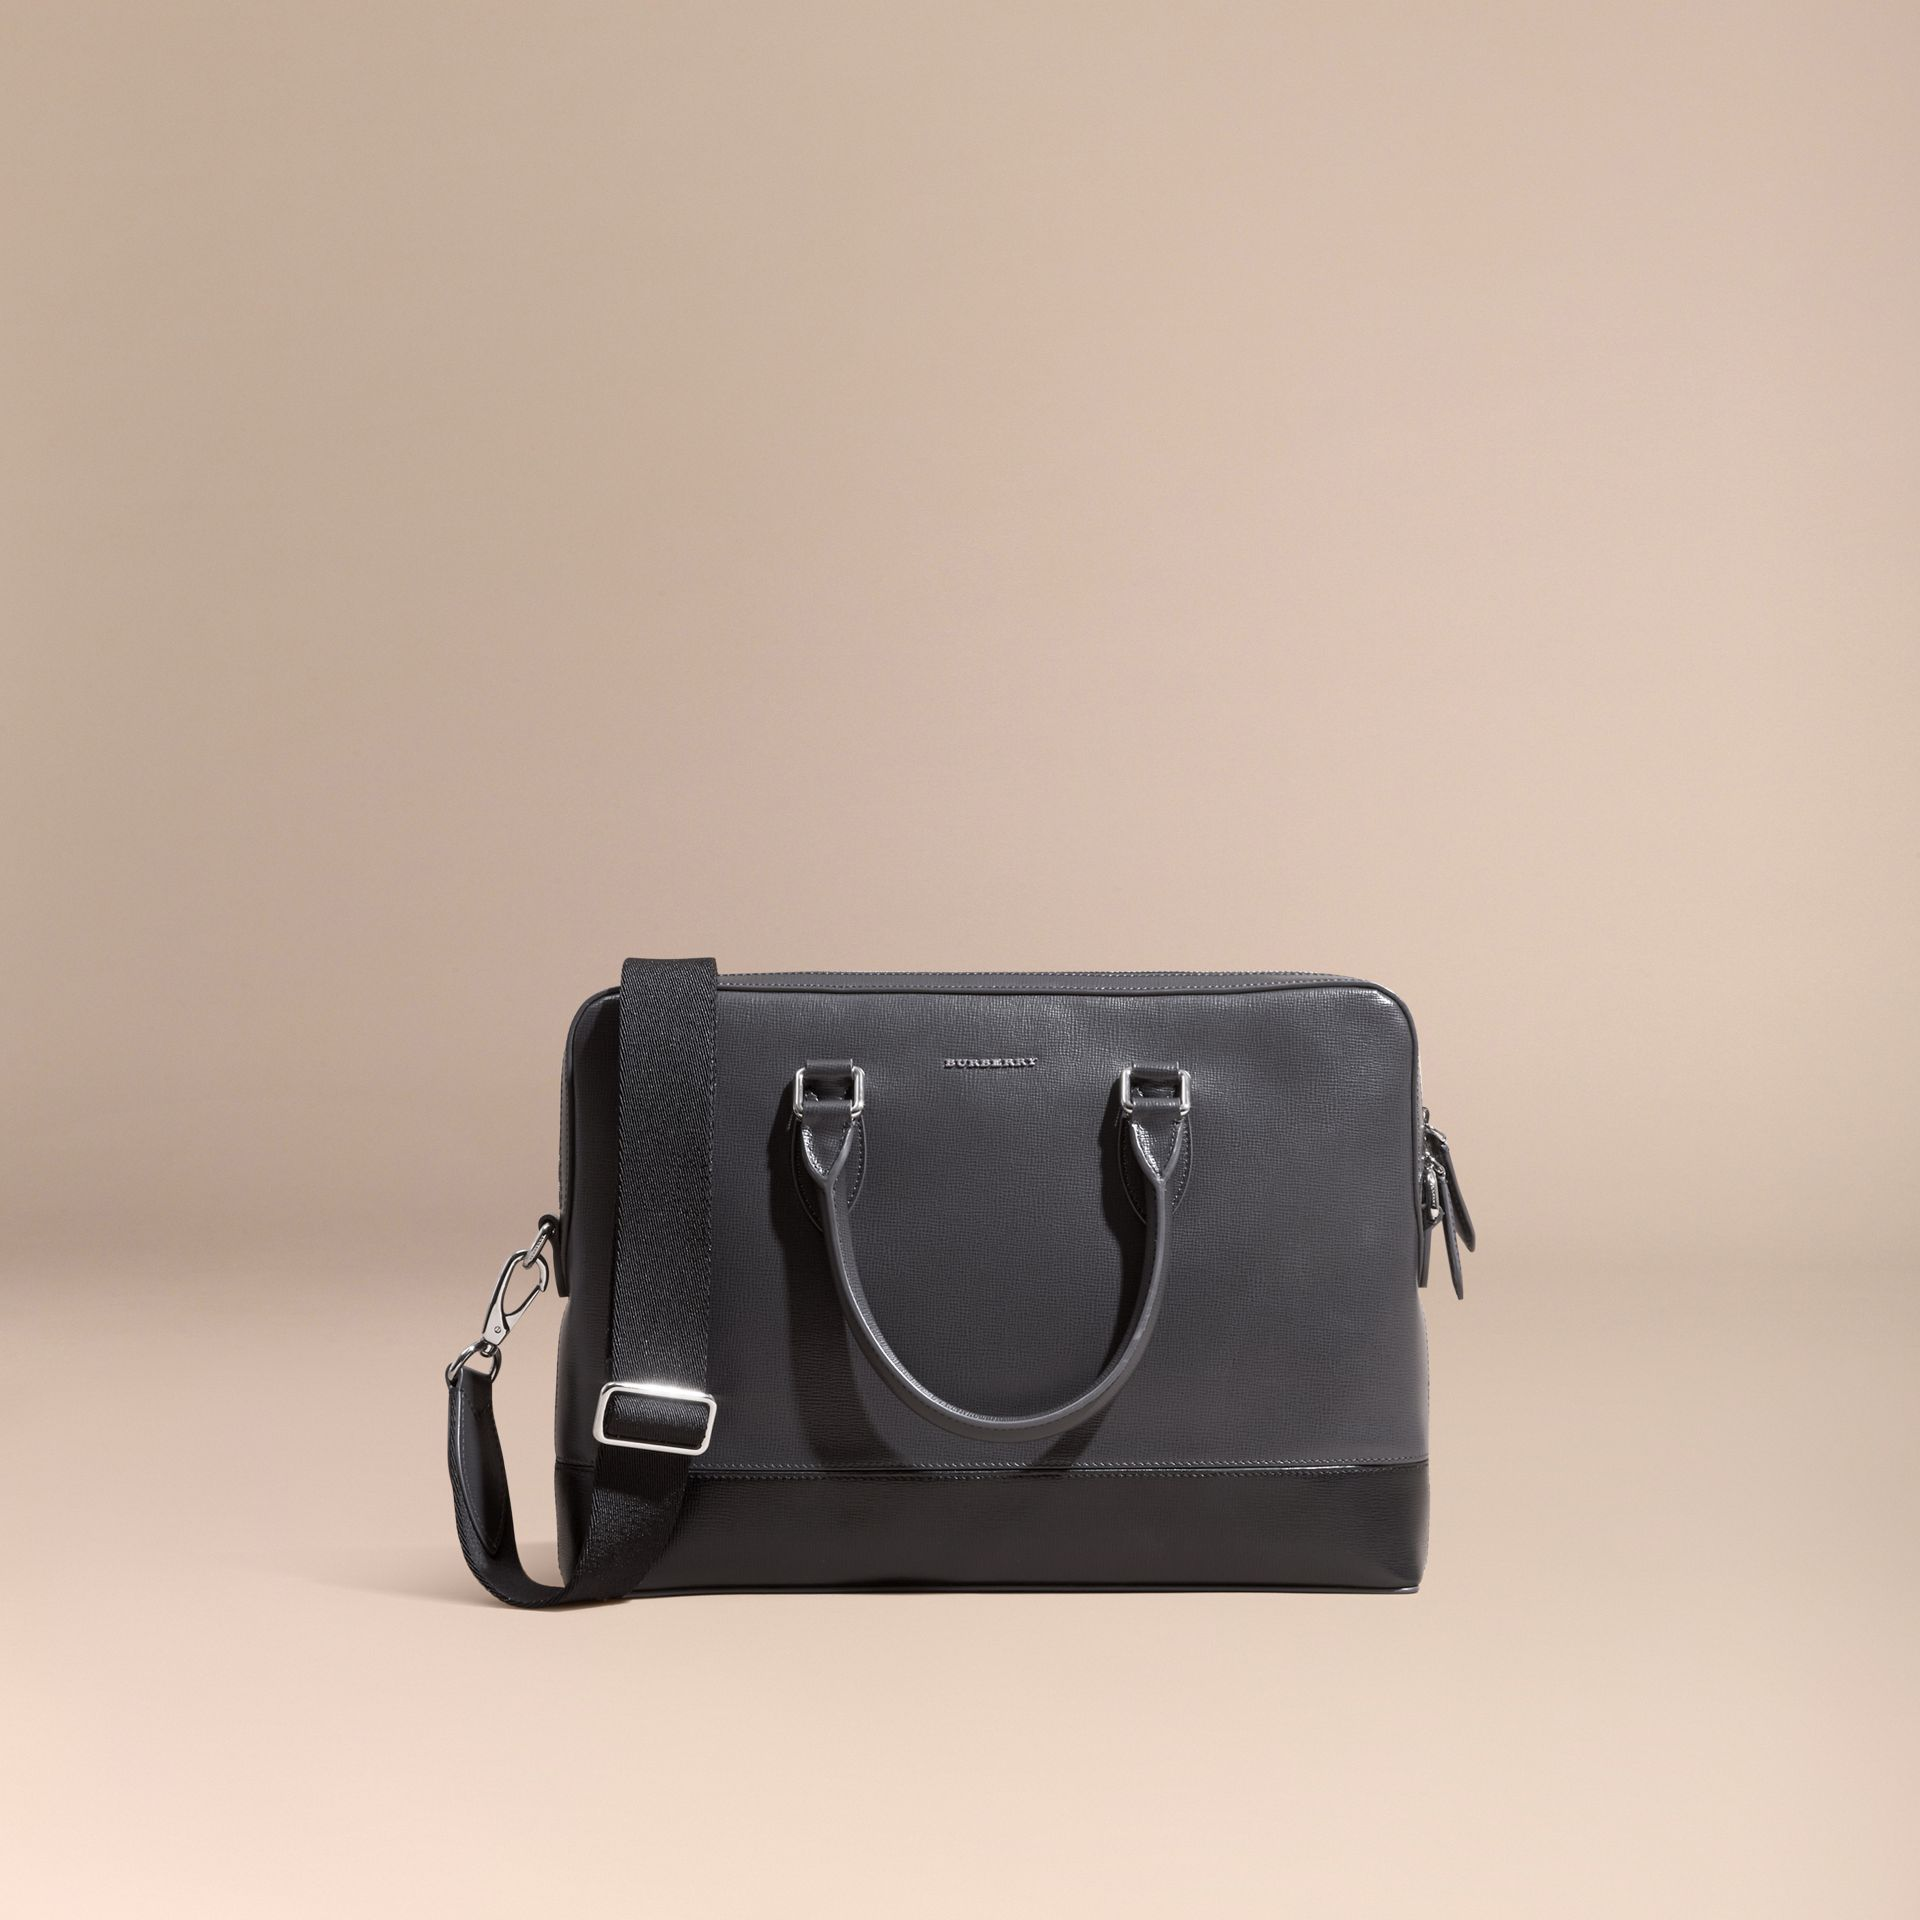 Anthracite/noir Sac The Barrow fin en cuir London à panneaux Anthracite/noir - photo de la galerie 8